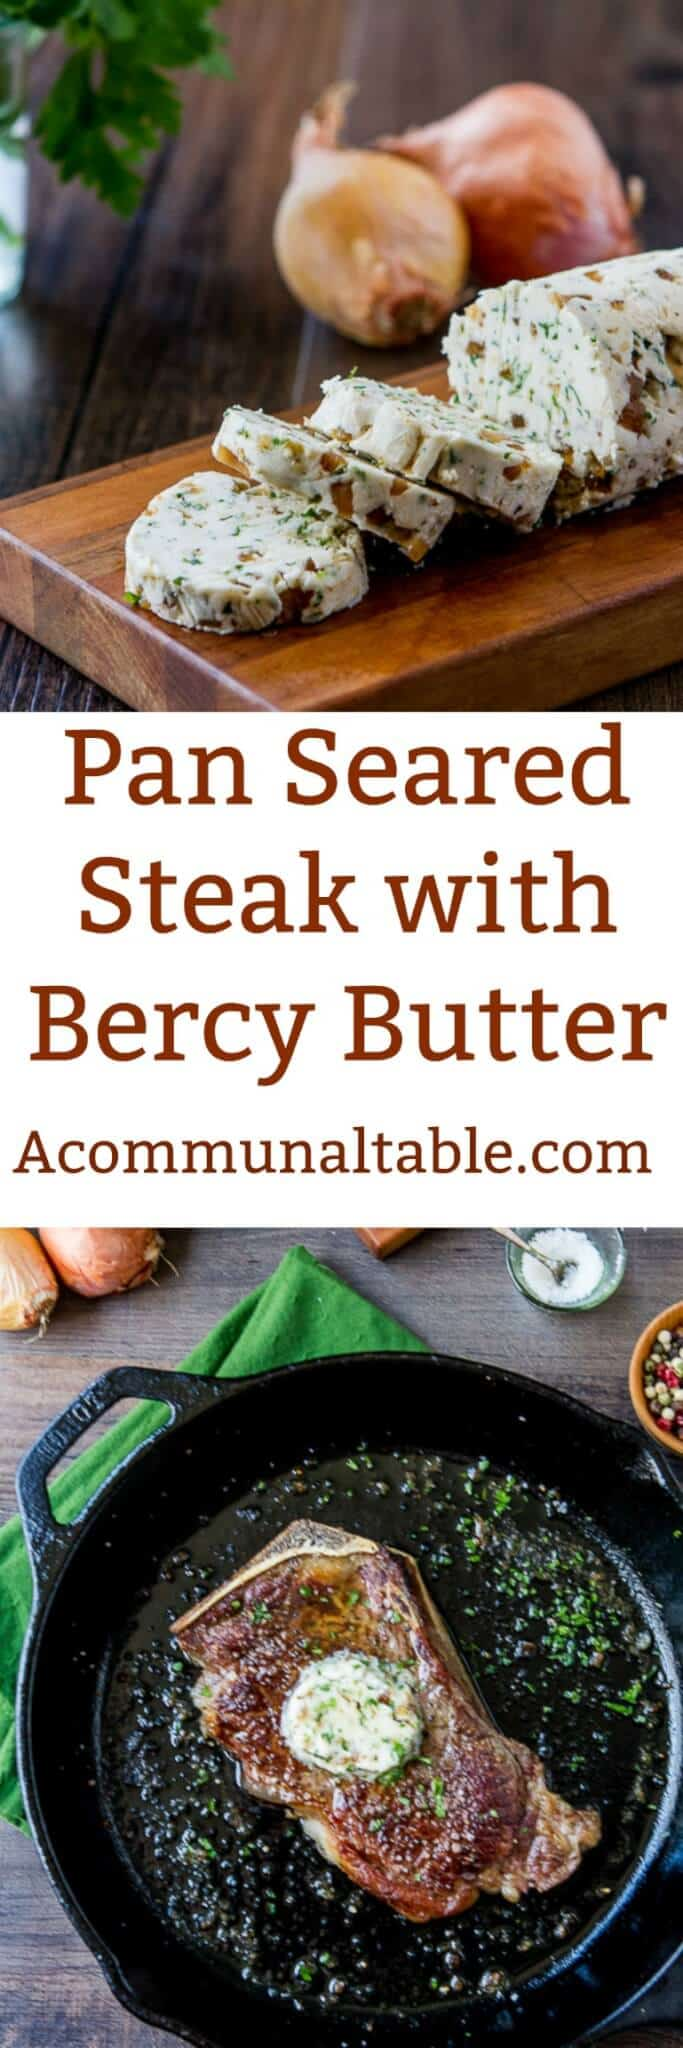 This Pan Seared Steak with Bercy Butter recipe is weeknight easy but fancy enough for company.